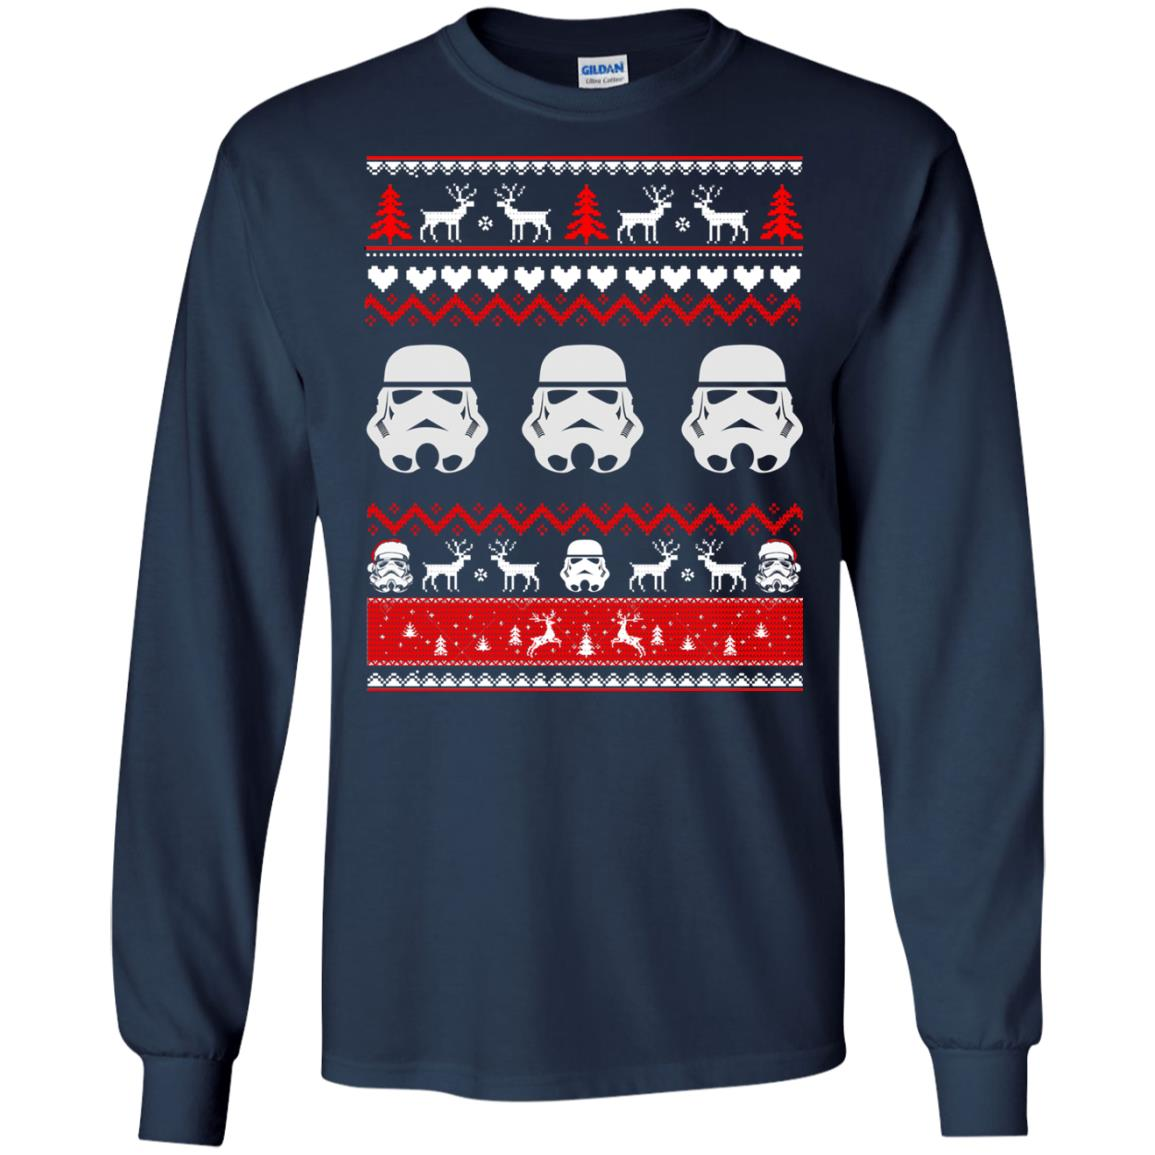 image 1725 - Stormtrooper Star Wars Ugly Christmas Sweatshirt, Shirt